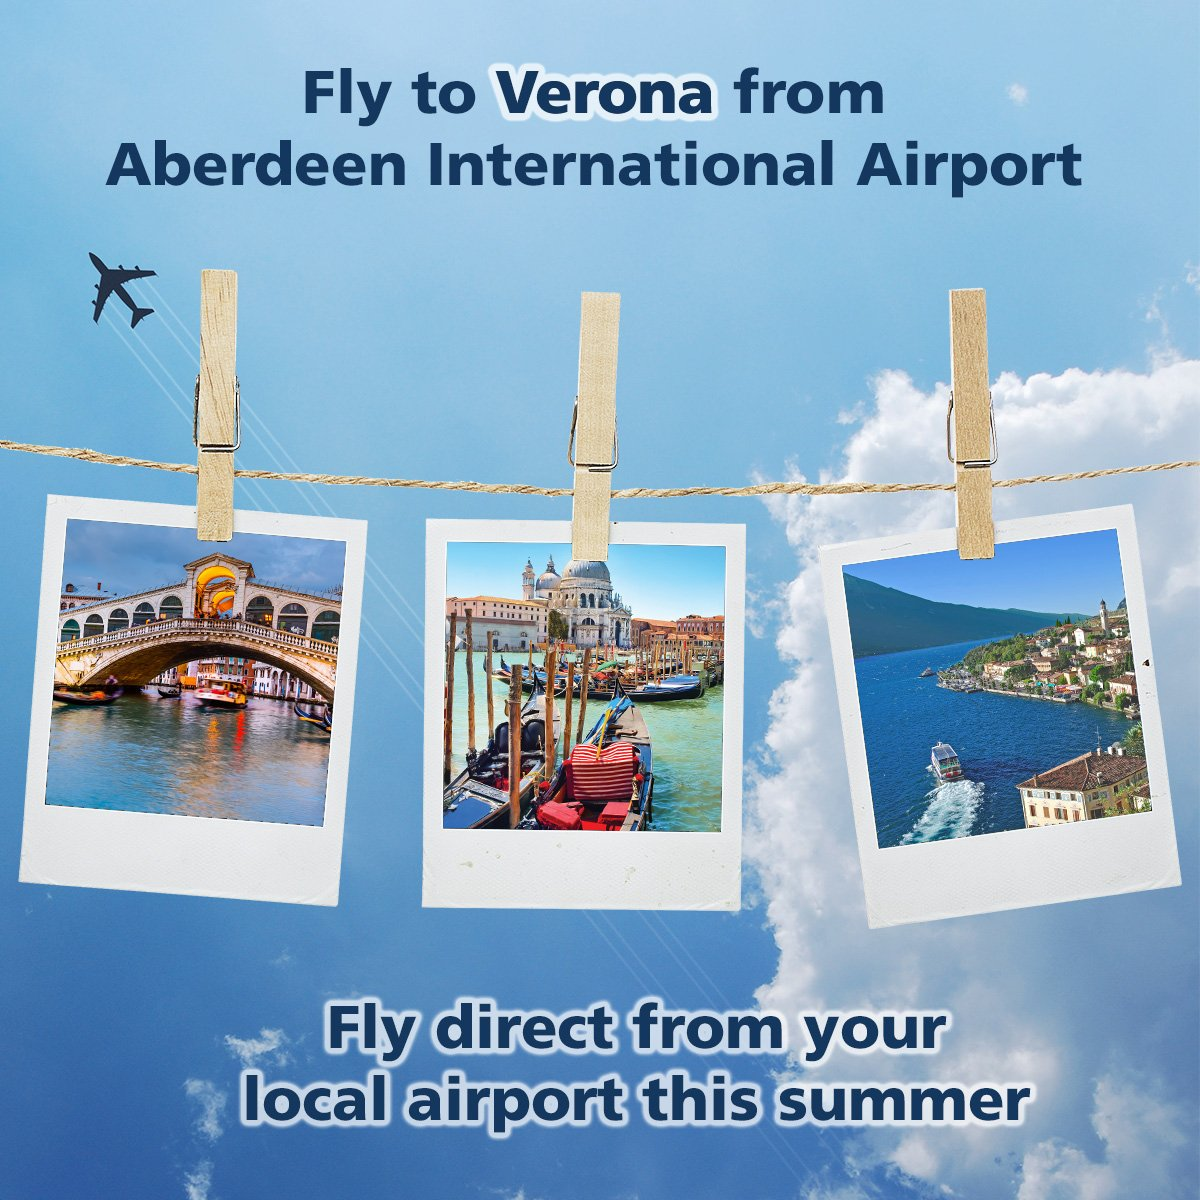 Fly direct to Verona, Italy, from your local airport this summer!